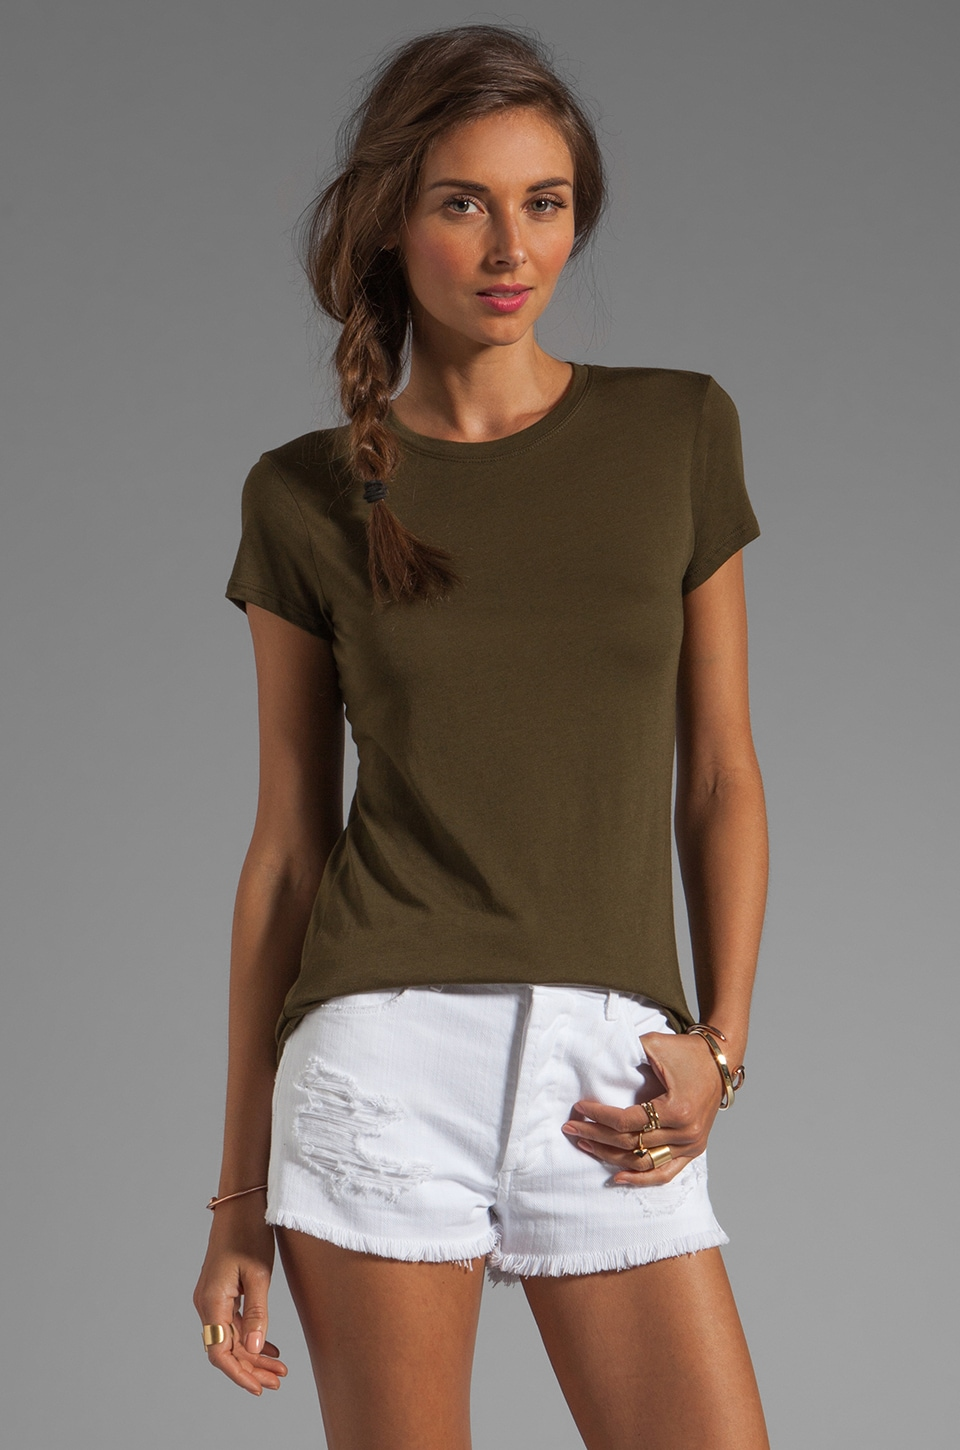 Vince Little Boy Tee in Dark Olive